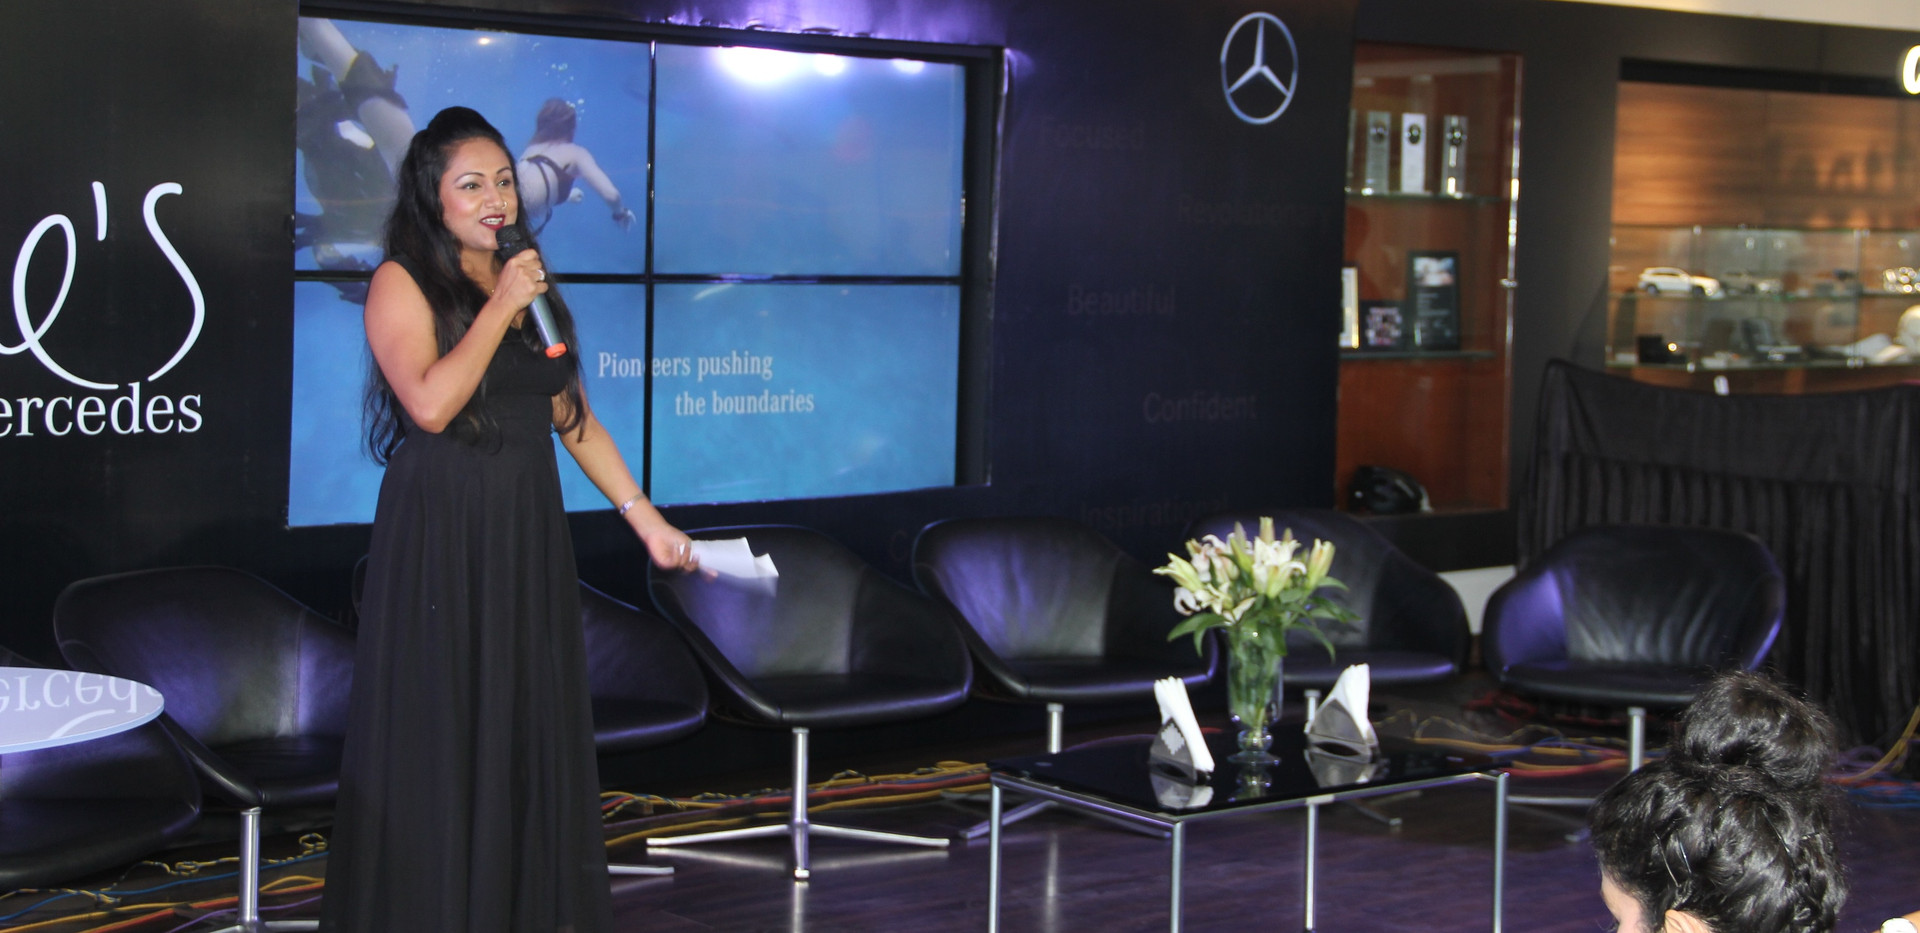 She's Mercedes Launch